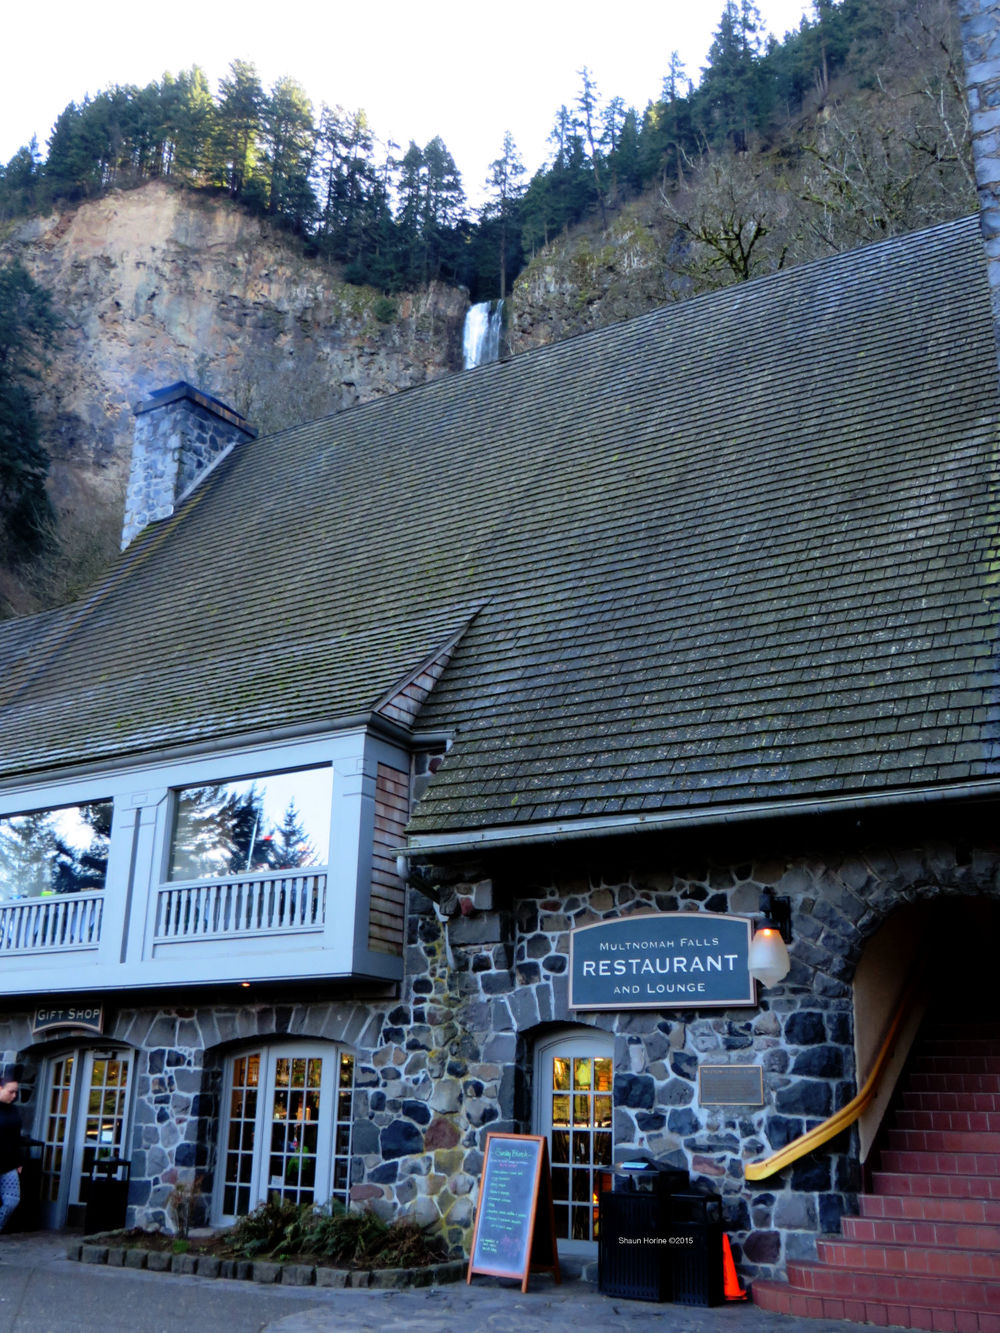 Multnomah Falls Restaurant and Lounge (at the Lodge). March 1st, 2015